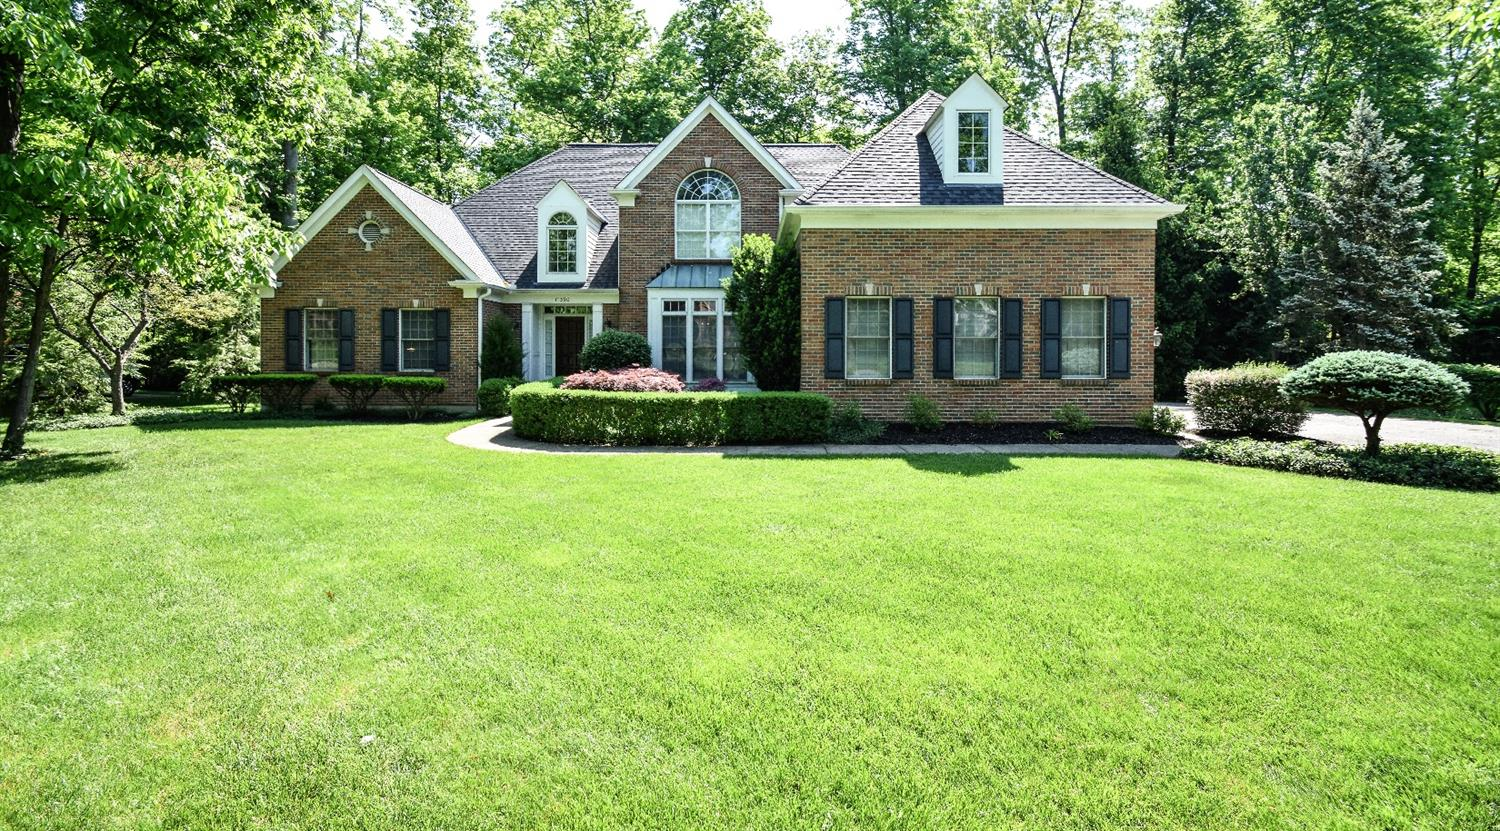 11390 Brittany Woods Ln Sycamore Twp., OH